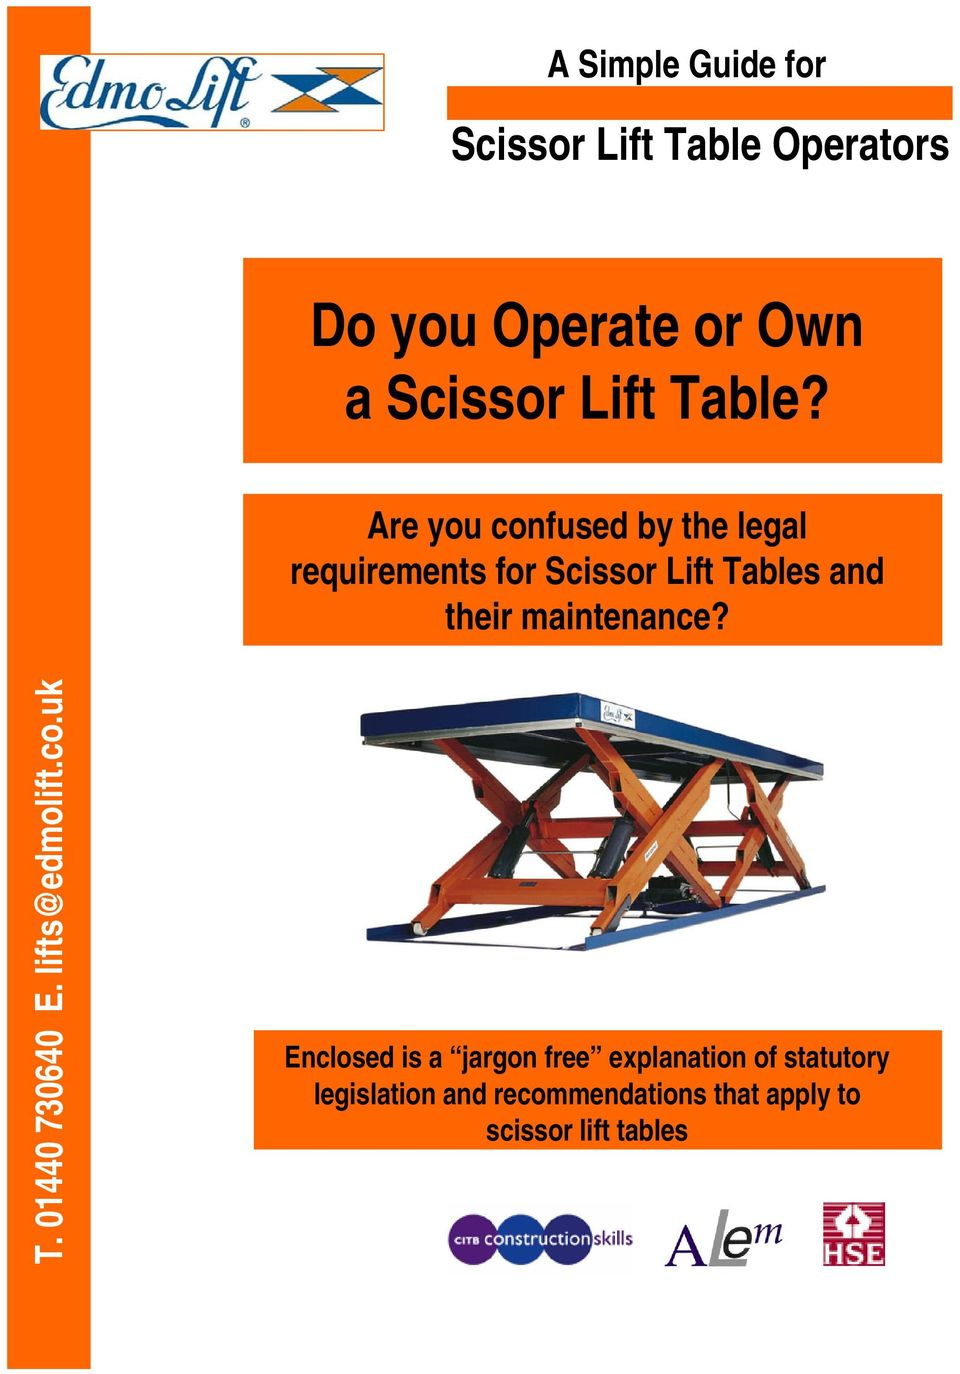 Are you confused by the legal requirements for Scissor Lift Tables and their